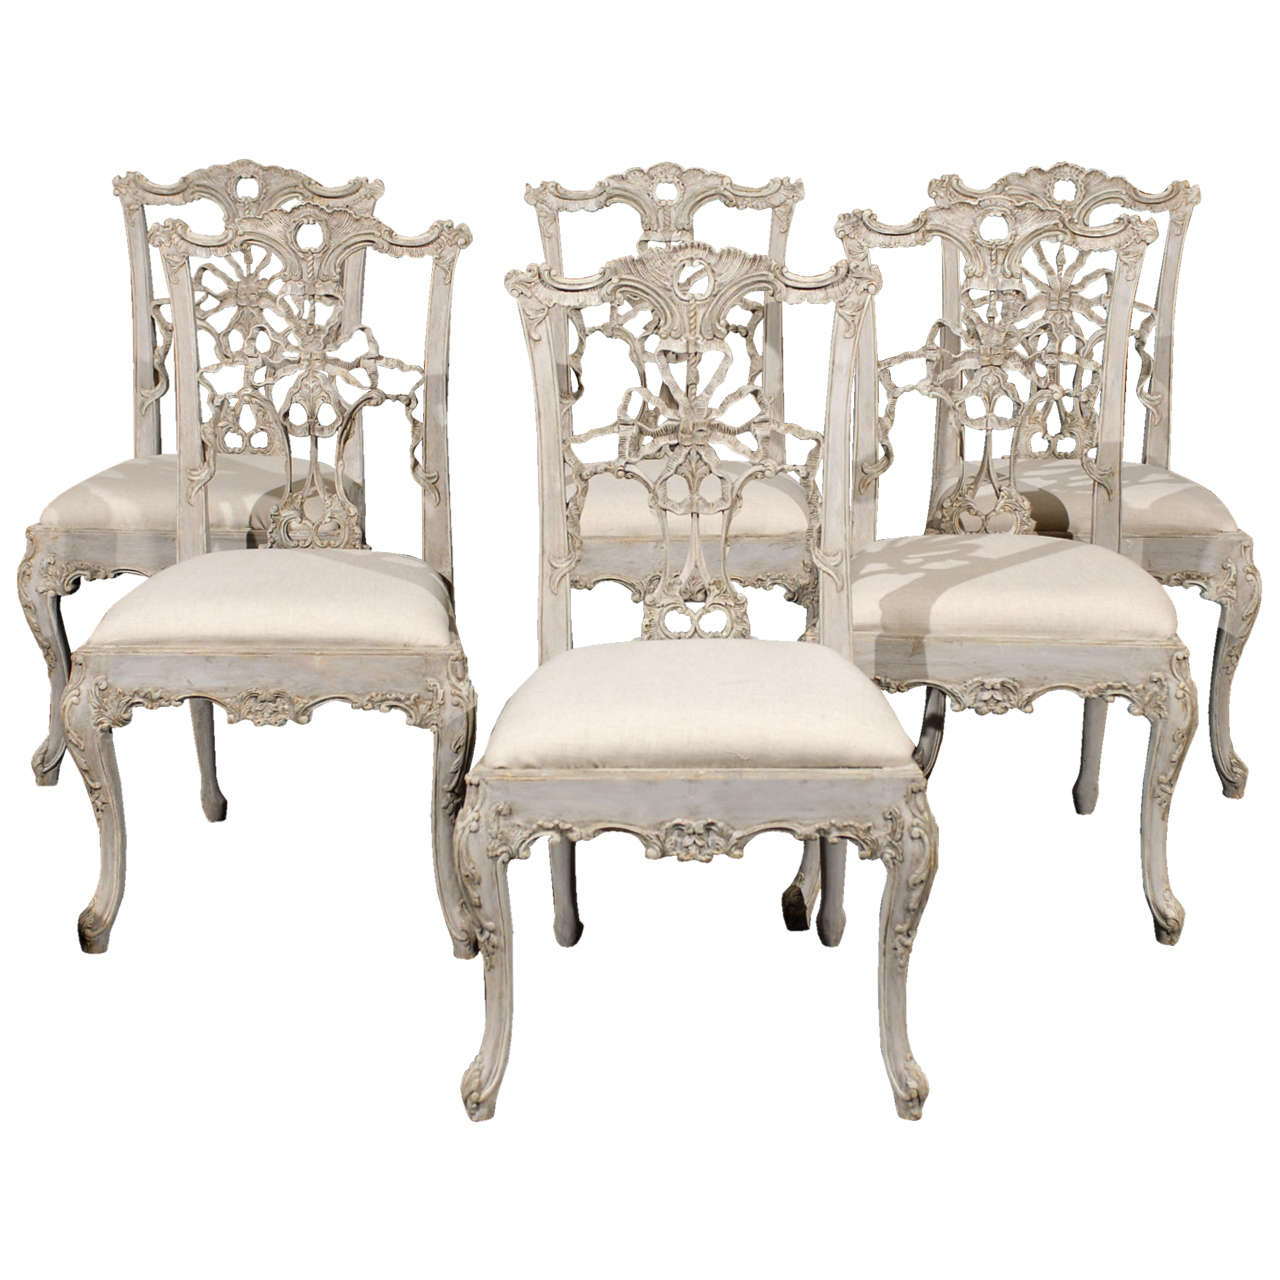 Attrayant Set Of 10 Italian Chippendale Style Painted Wood Chairs For Sale